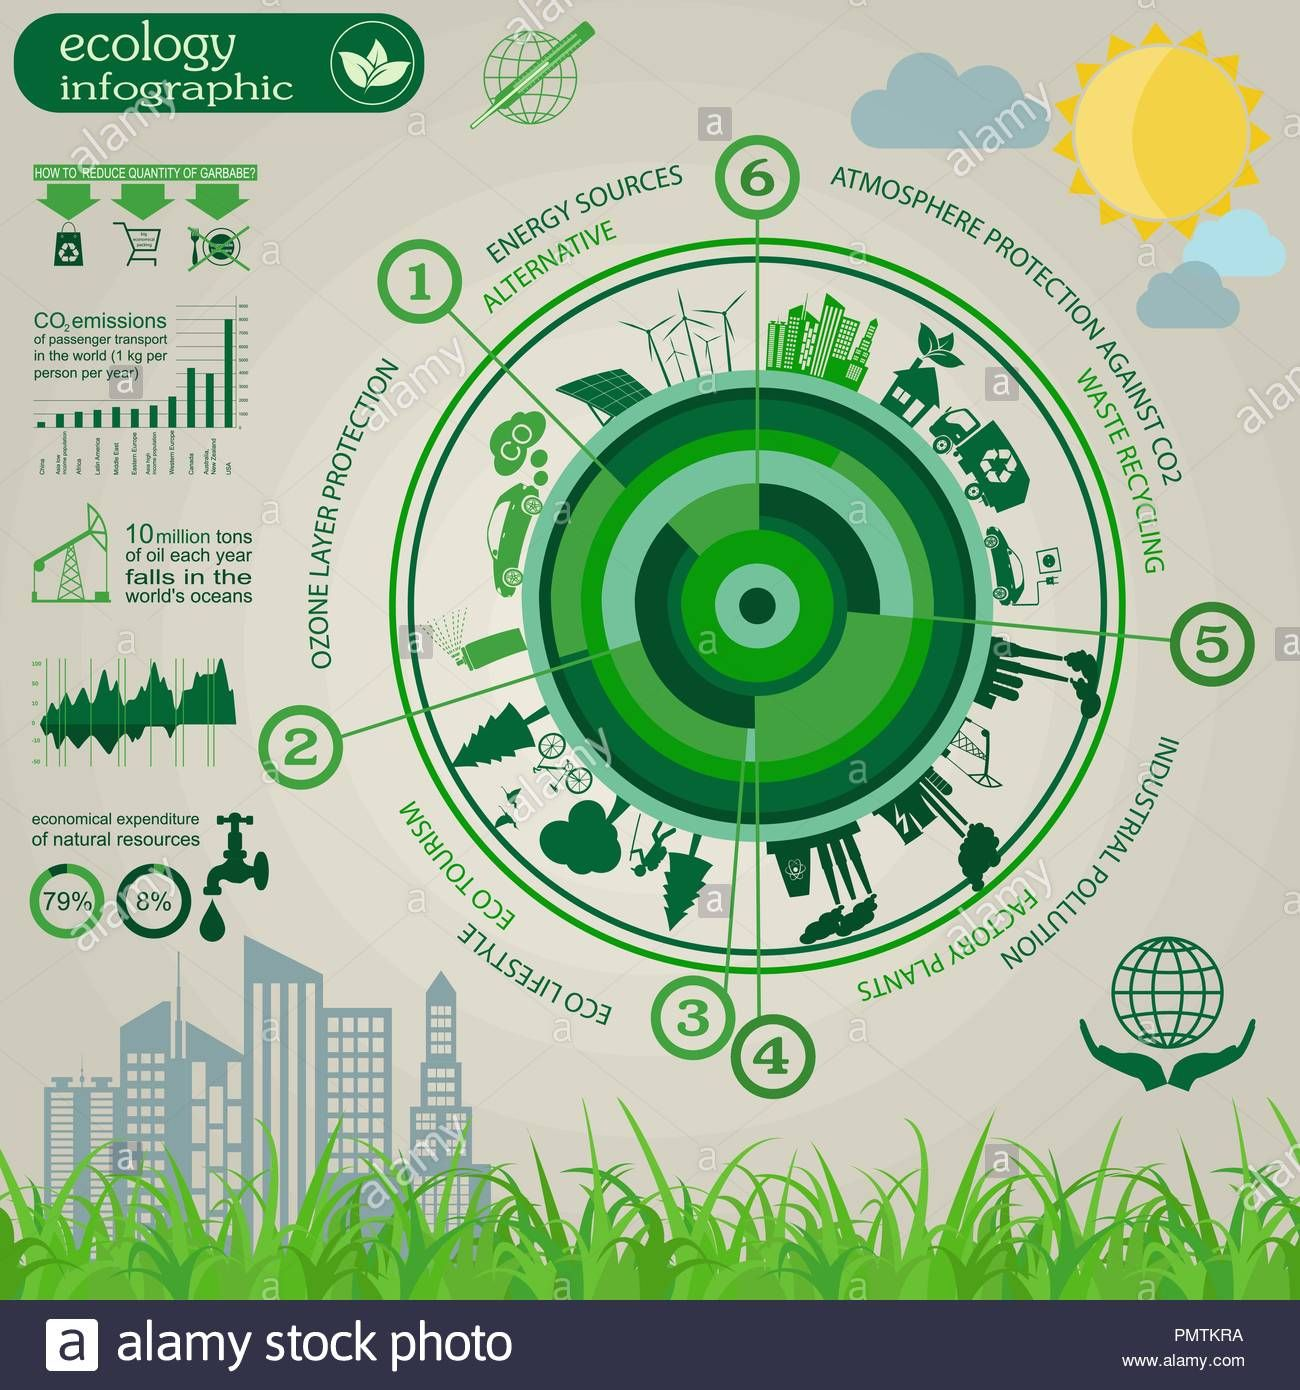 Download This Stock Vector Environment Ecology Infographic Elements Environmental Risks Ecosystem Template Vector Illust Infographic Solar Energy Ecology